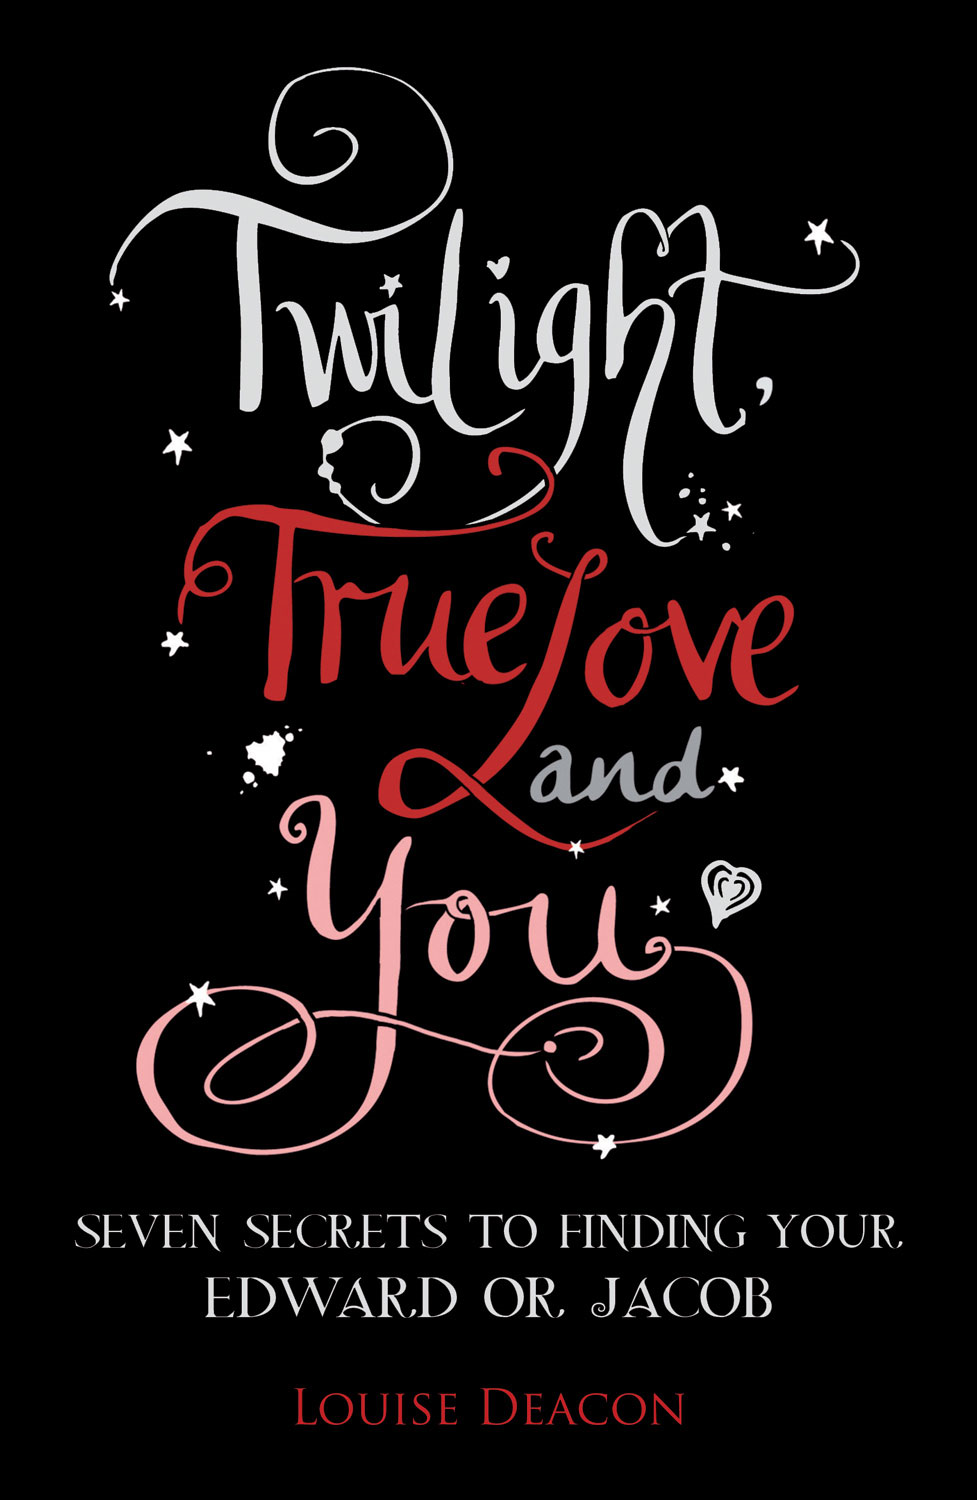 Twilight, True Love and You: Seven Secret Steps to Finding Your Edward or Jacob By: Louise Deacon